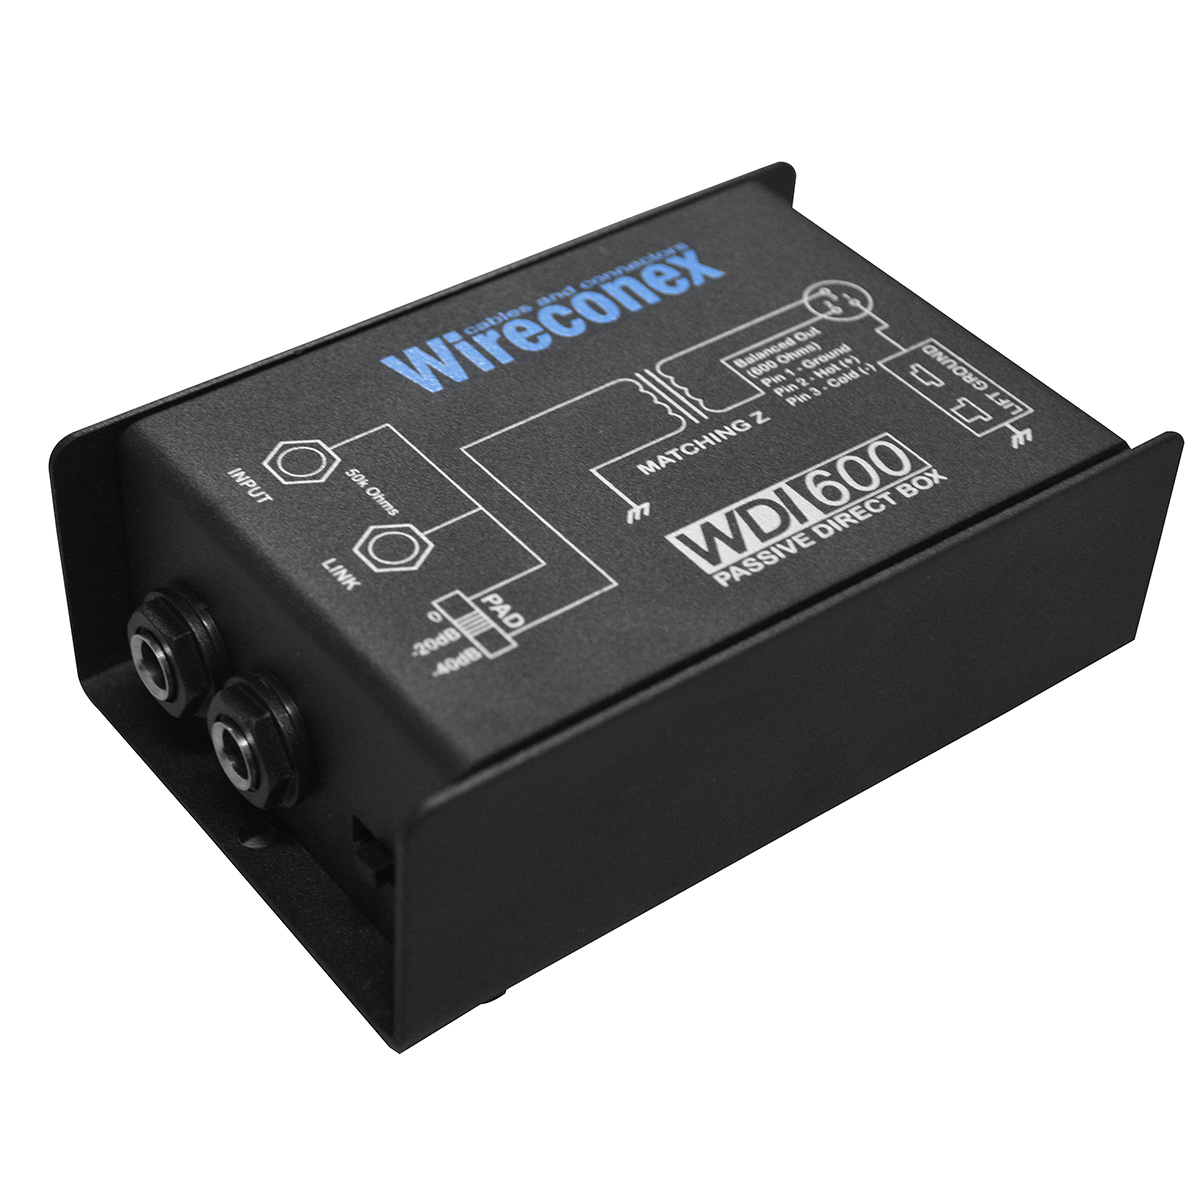 WDI600 - Direct Box Passivo WDI 600 - Wireconex